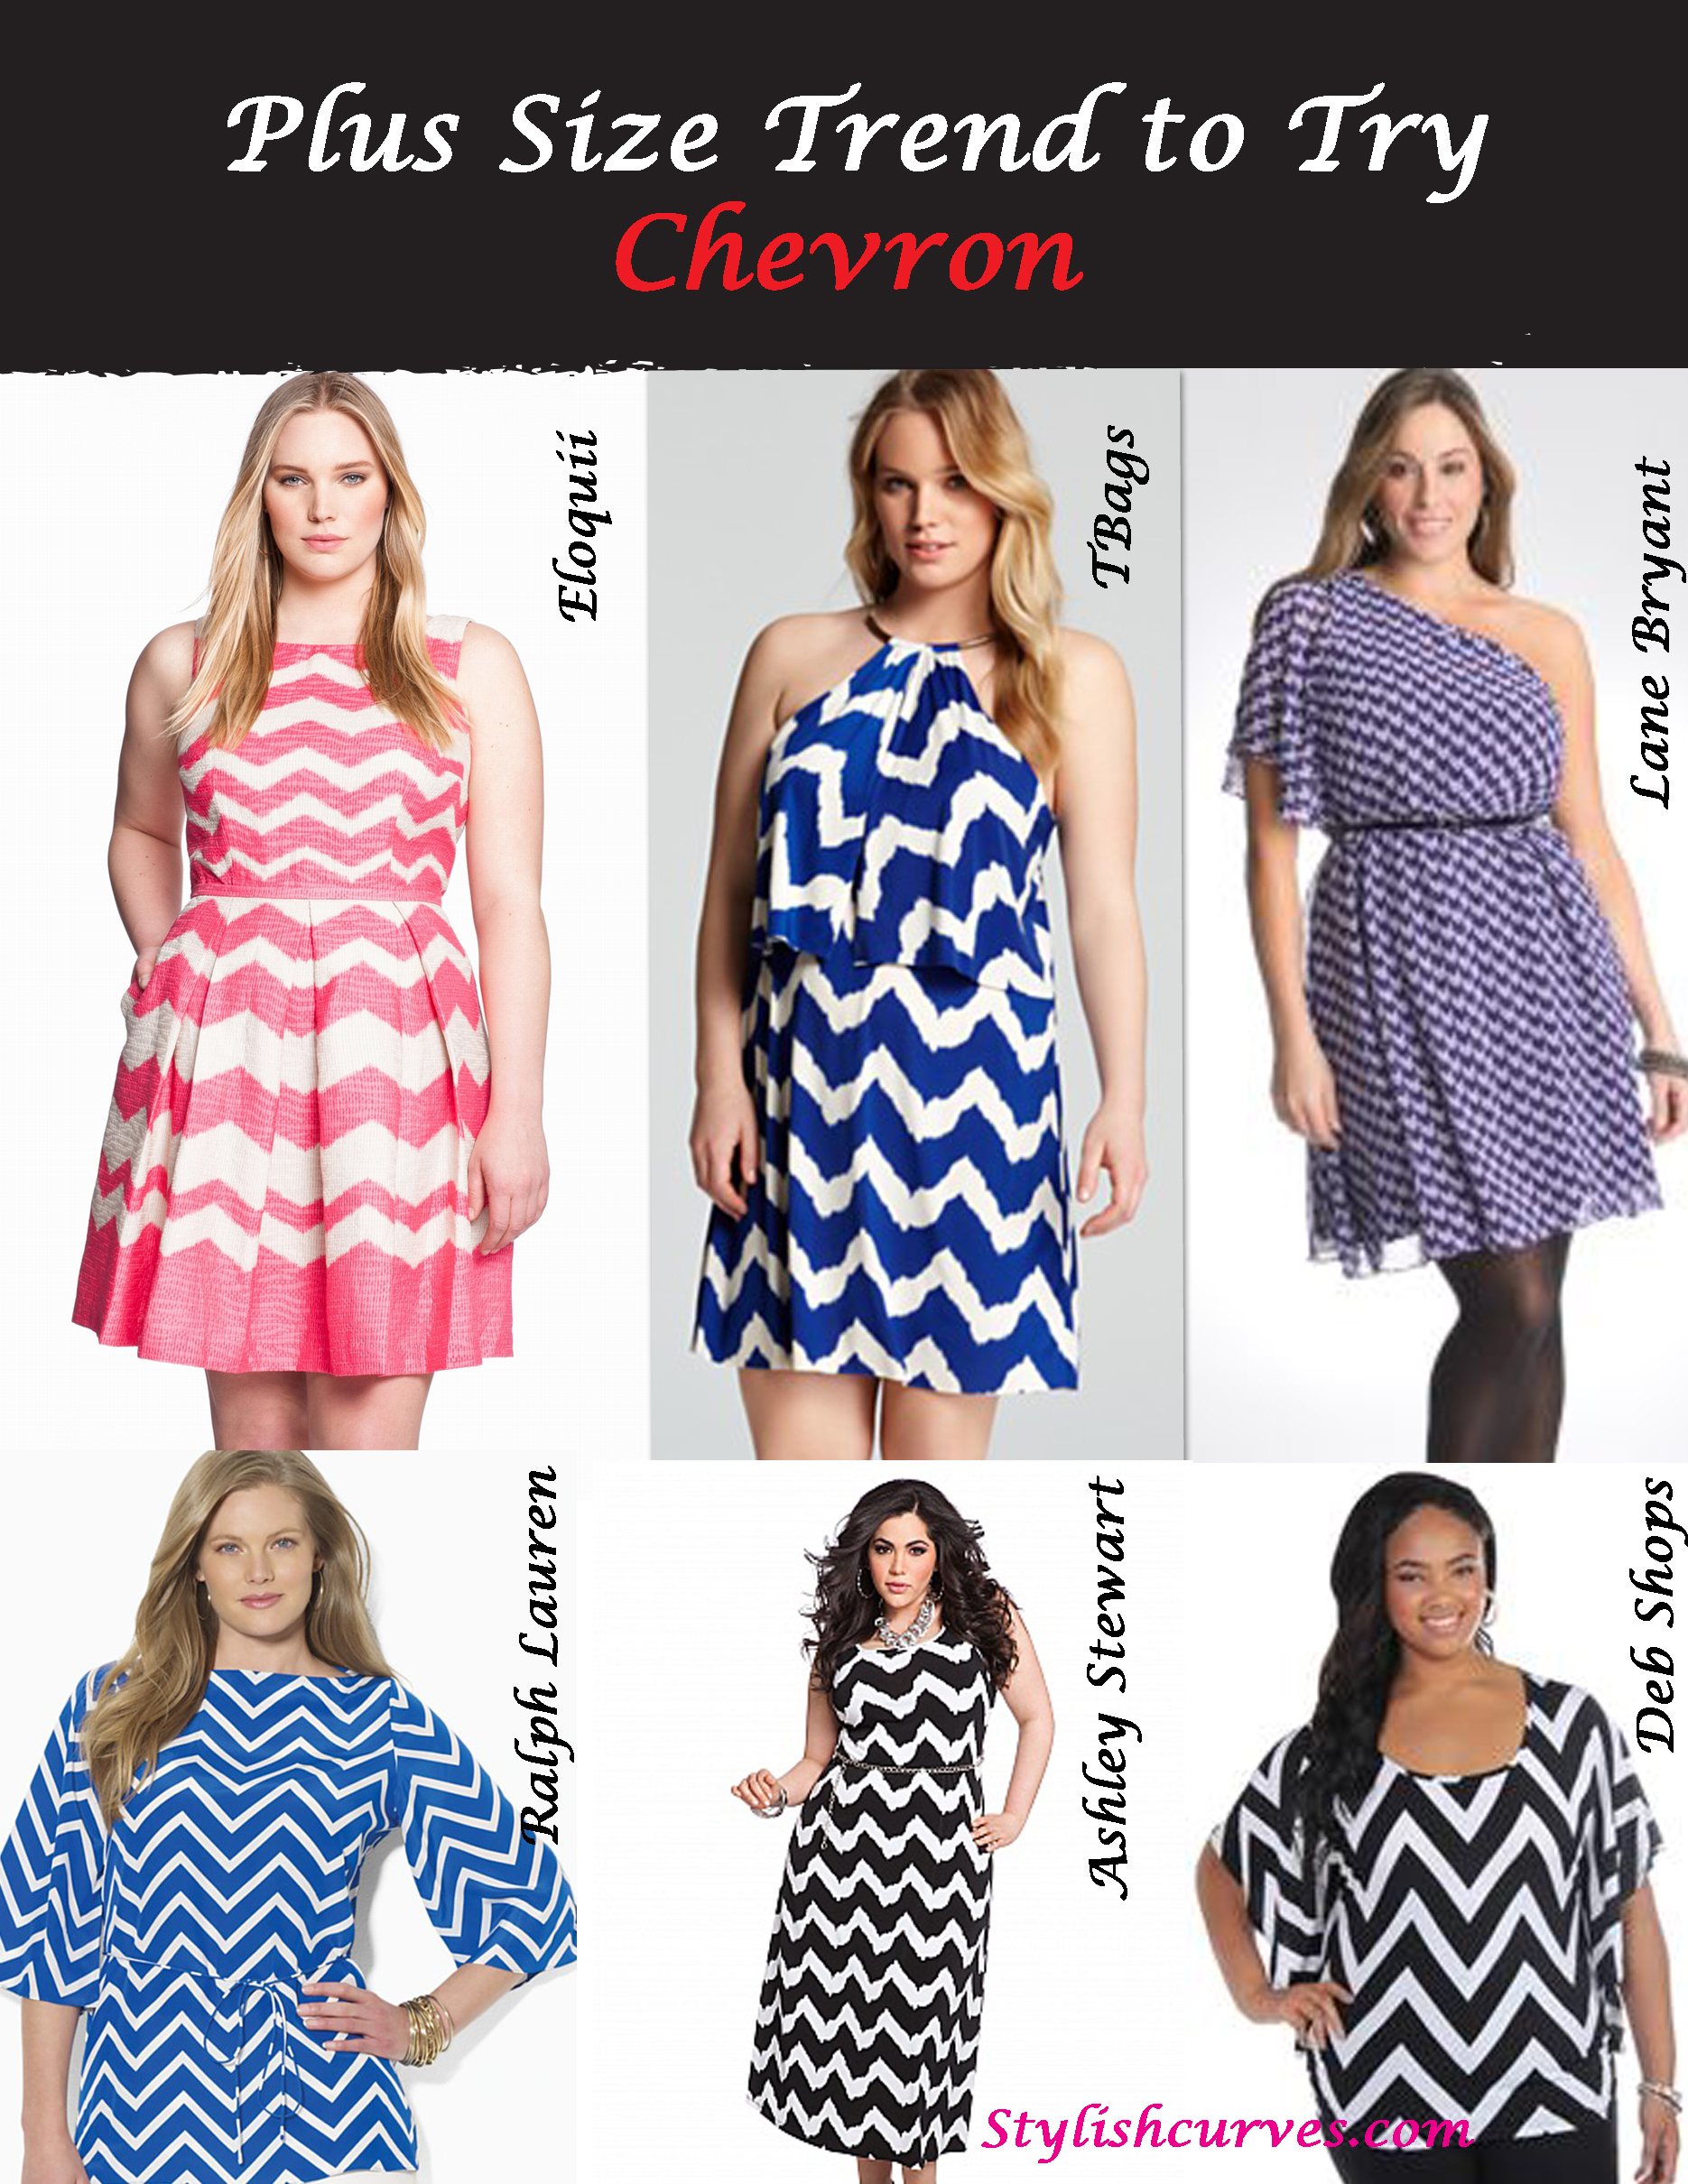 Plus Size Trend To Try Chevron Stylish Curves